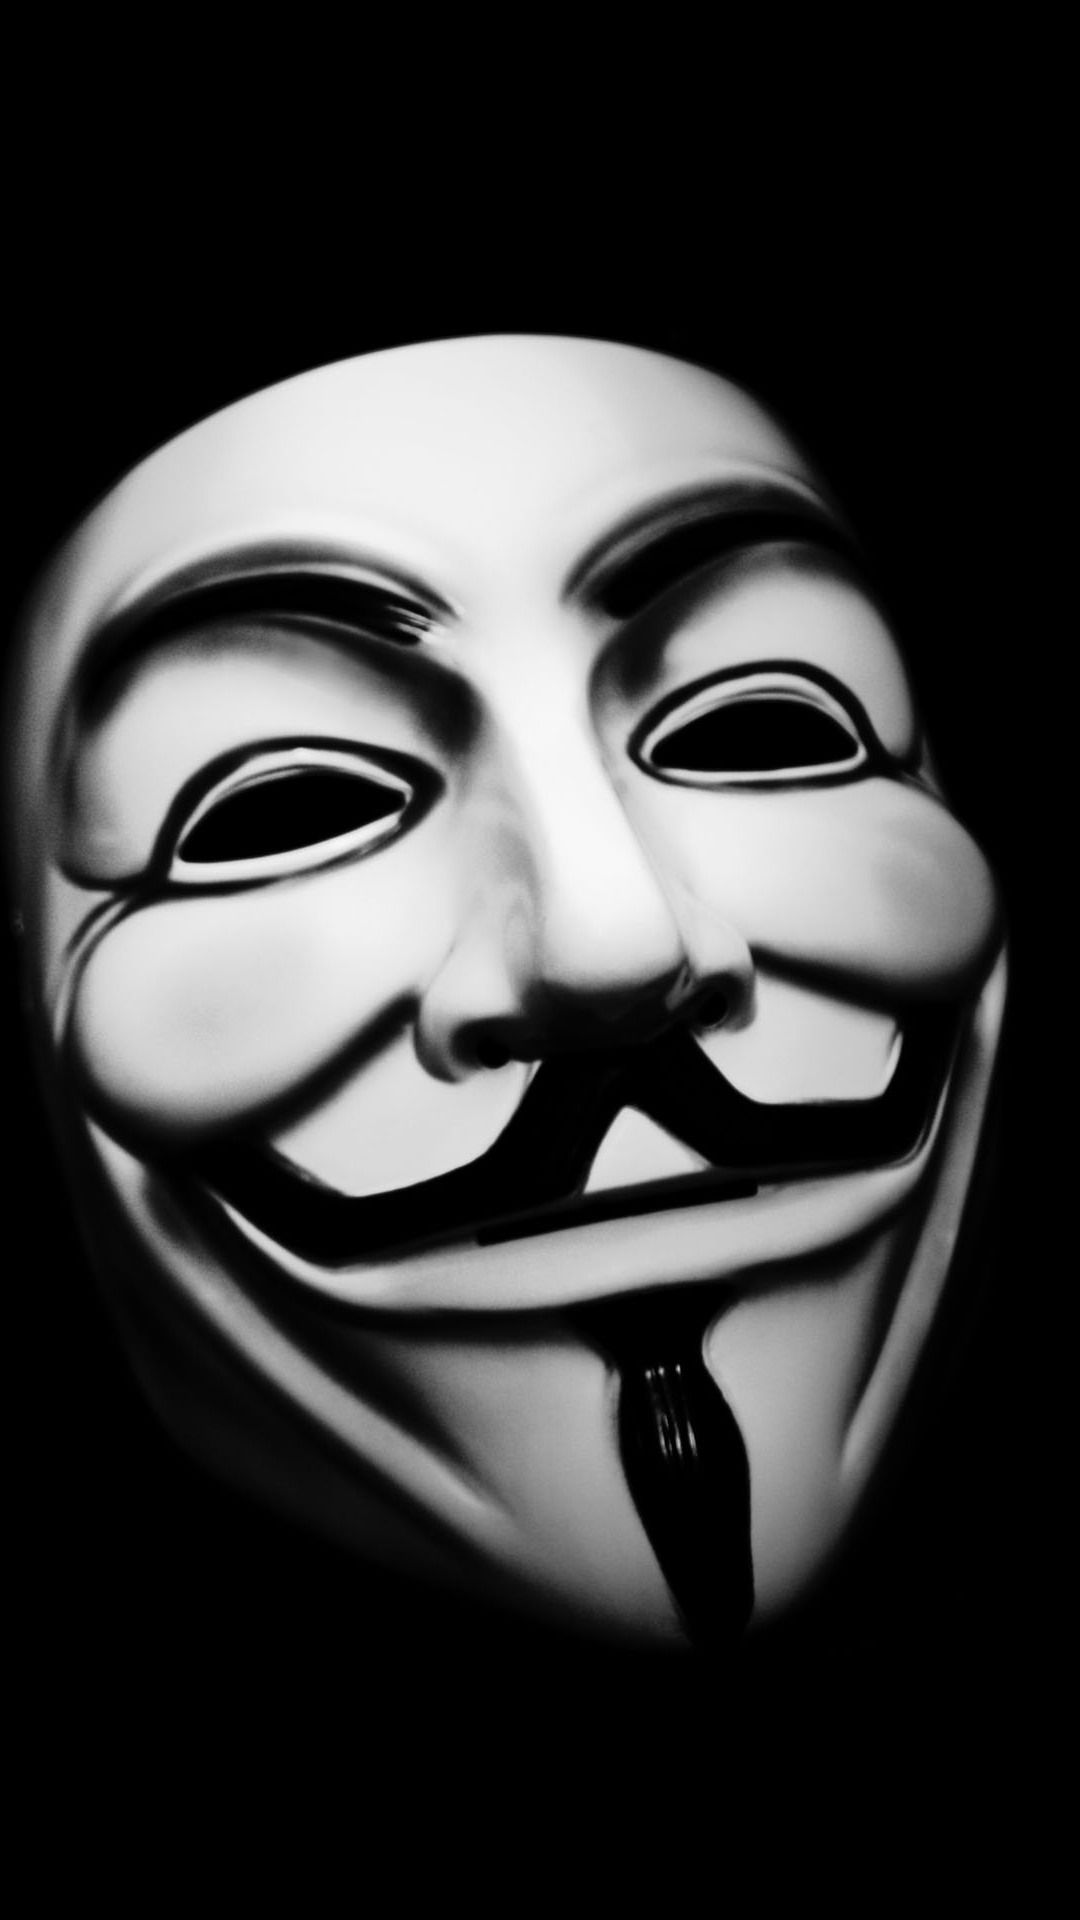 Vendetta Mask Tap To See More Black And White Style IPhone Wallpapers